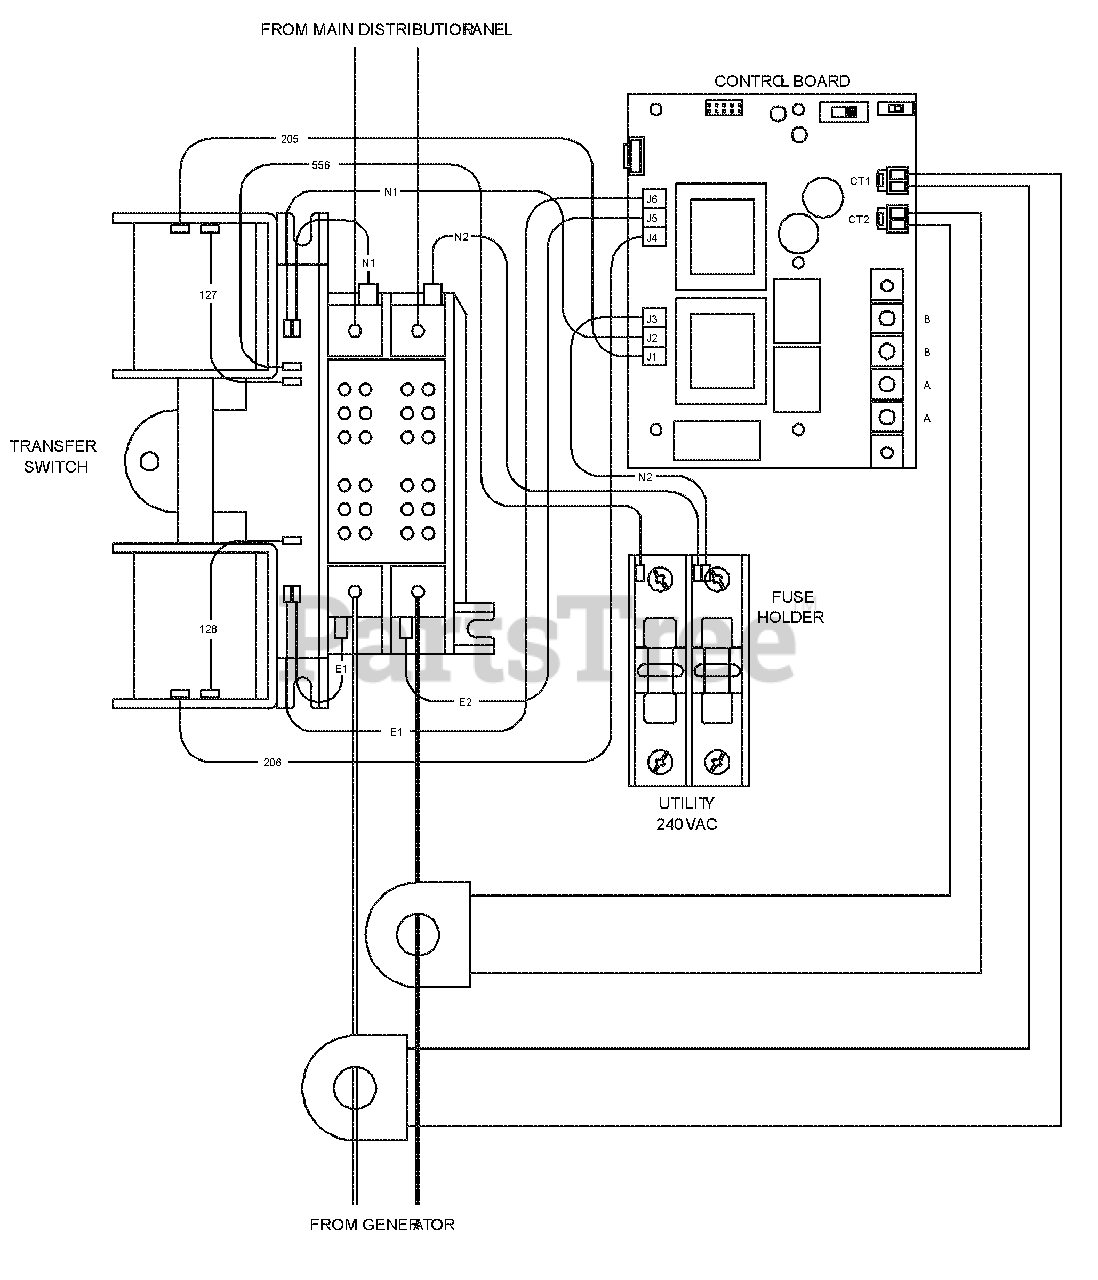 Briggs & Stratton 040475-00 - Briggs & Stratton 16kW Home ... on manual transfer switch diagram, portable generator transfer switch diagram, whole house transfer switch diagram, power transfer switch diagram, transfer switches specifications, limit switches wiring diagram, transfer switches electrical, install generator transfer switch diagram,